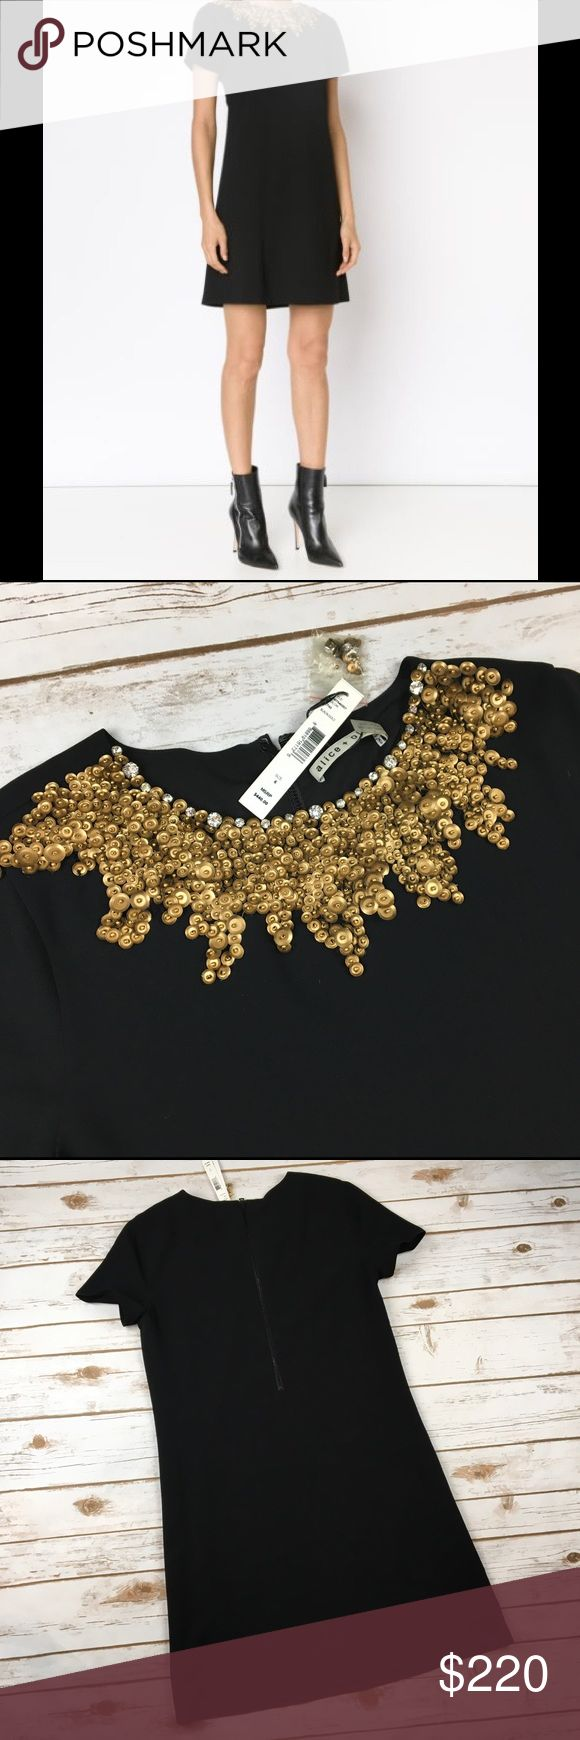 Alice + Olivia Beaded Collar Dress black Shift 6 Alice + Olivia Beaded Collar Dress Gold Sequin Rhinestone Shift Black NWT Sz 6   Absolutely stunning! Black shift dress with gorgeous beaded gold sequin detail at the neck with a smattering of rhinestones throughout.  Dress is new with tags and retailed for $440.  Comes with package of additional sequins and rhinestones.  This dress would be PERFECT for New Years Eve! Tagged size 6 but please see measurements to ensure proper fit.  Measured…